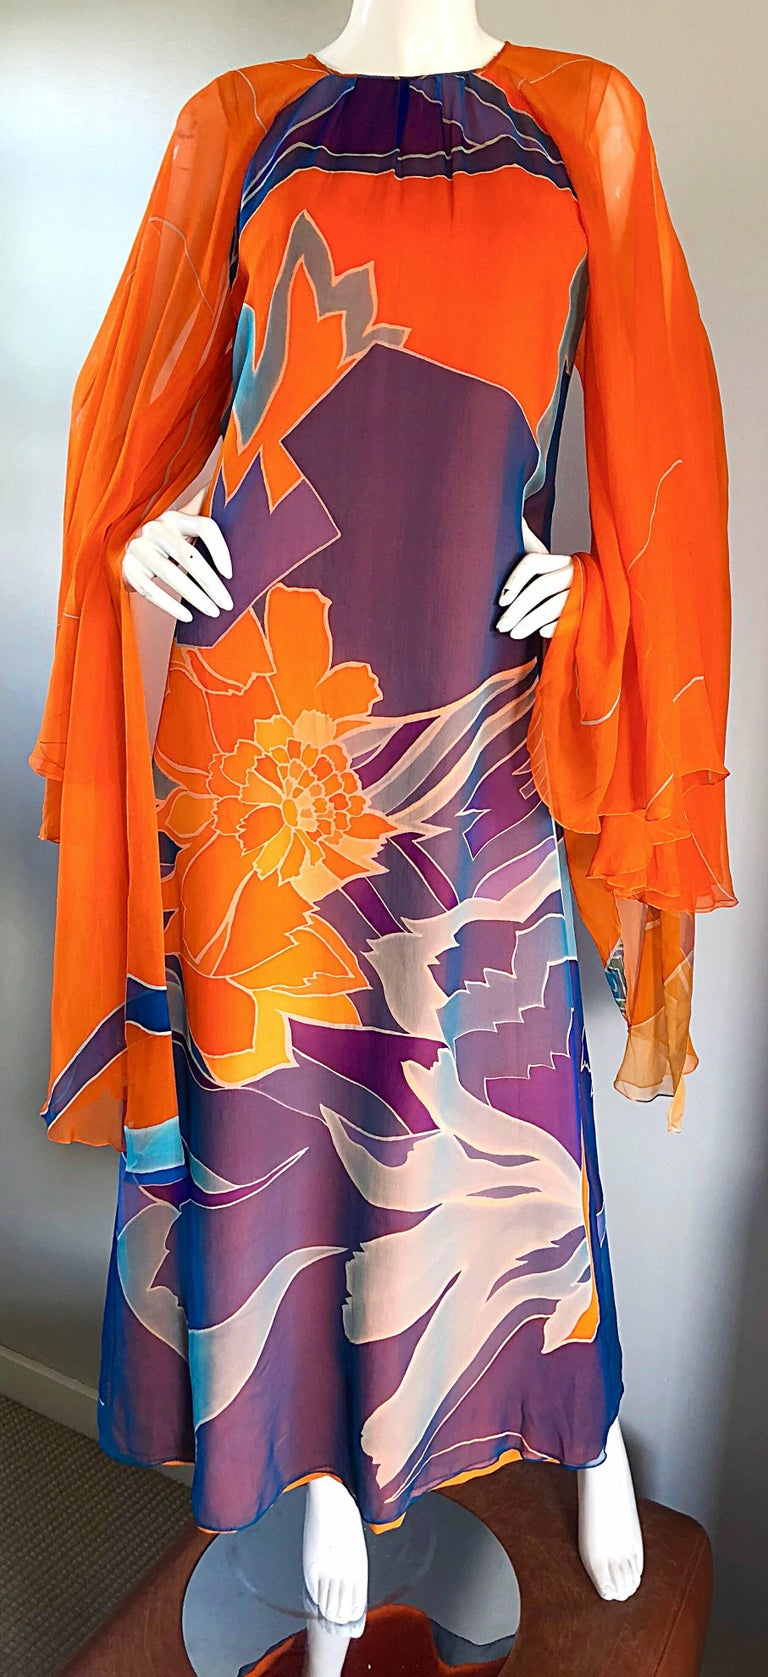 1970s Hanae Mori Couture Bright Orange Silk Chiffon Vintage Caftan Maxi Dress For Sale 3